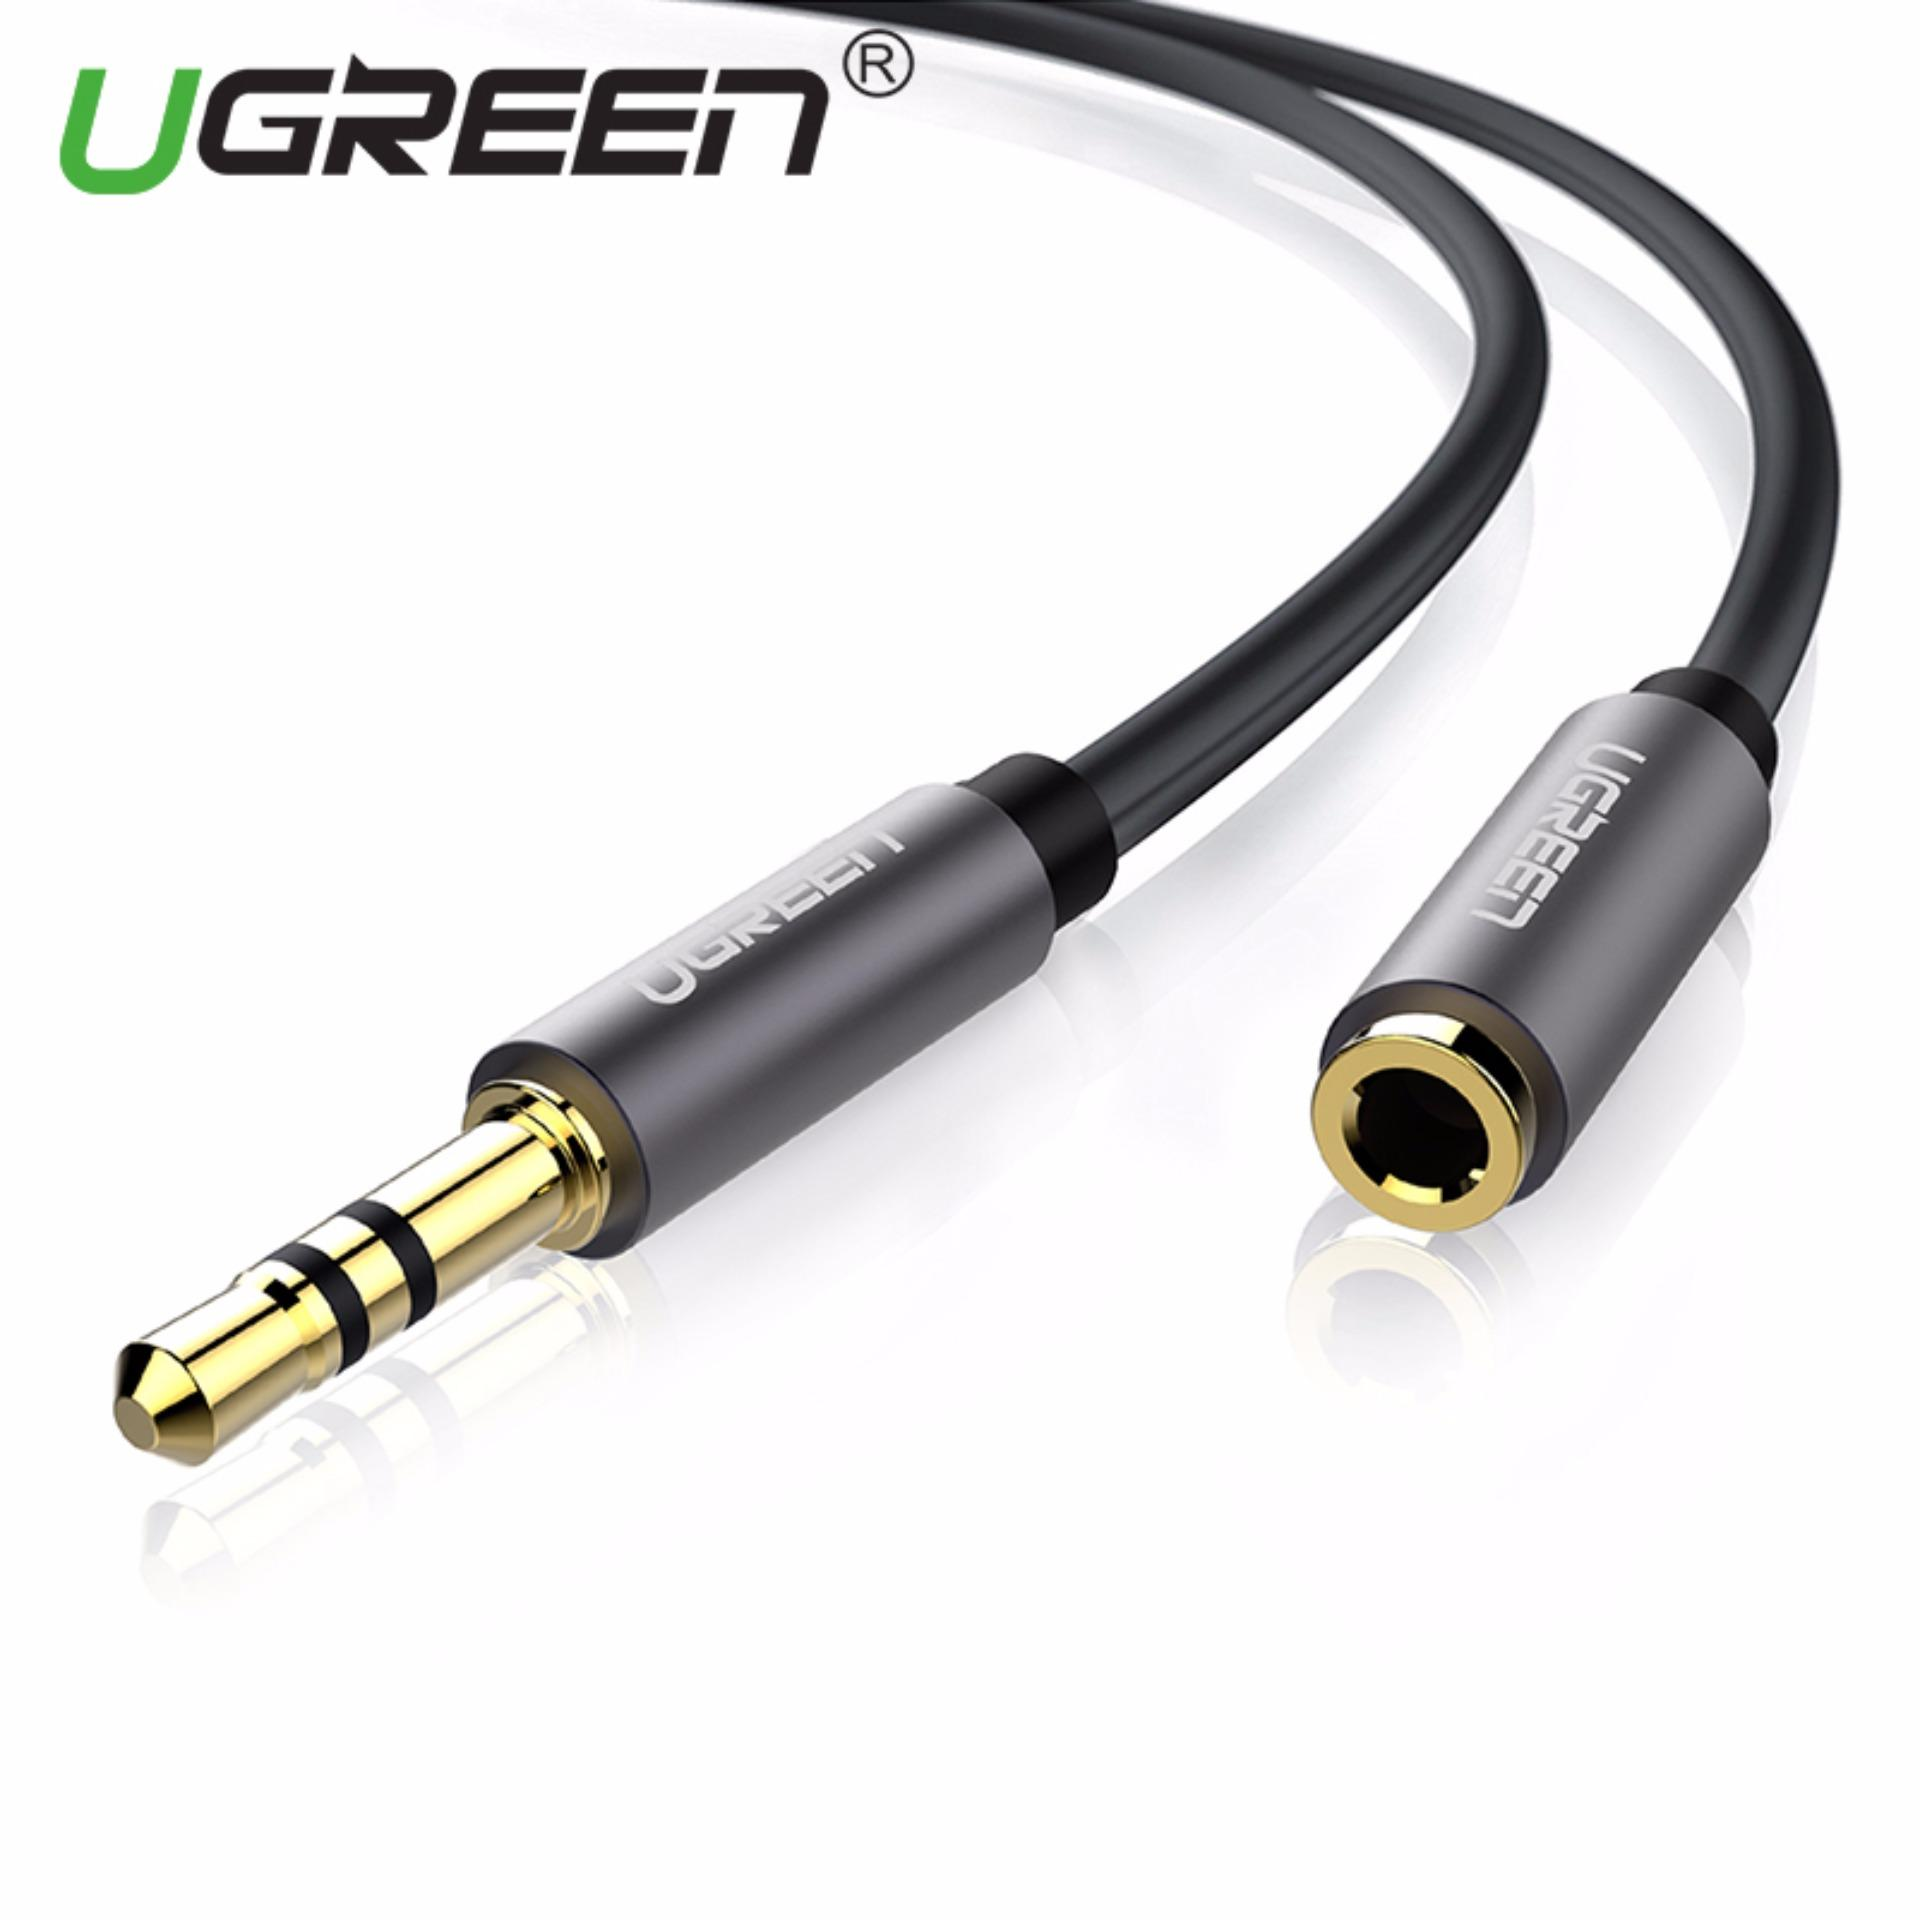 UGREEN 3.5mm Stereo Jack Audio Extension Cable with Aluminum Case (1m) Black - Intl Singapore